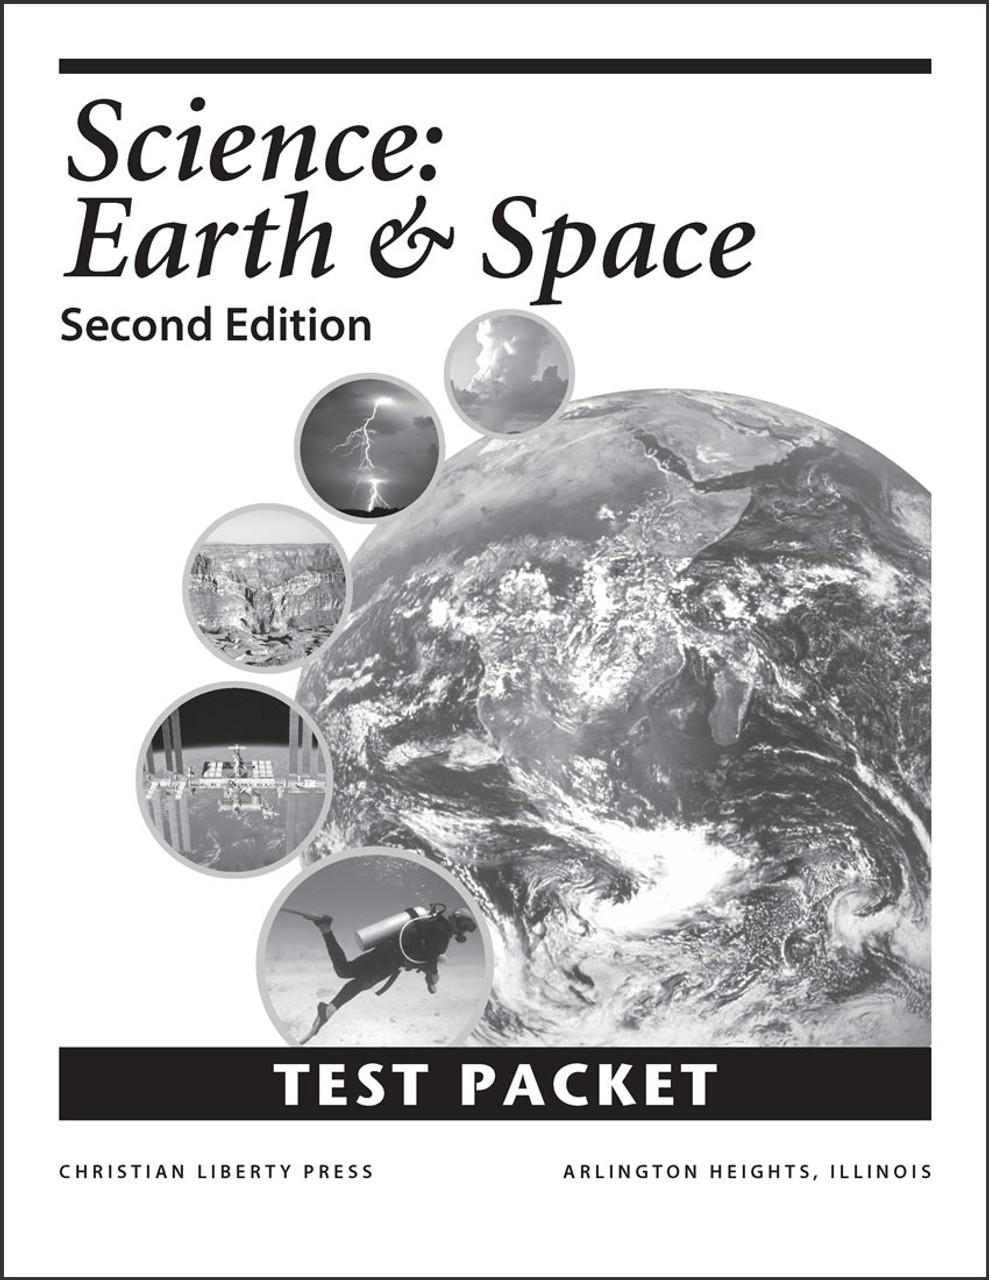 Science: Earth and Space, 2nd edition - Test Packet